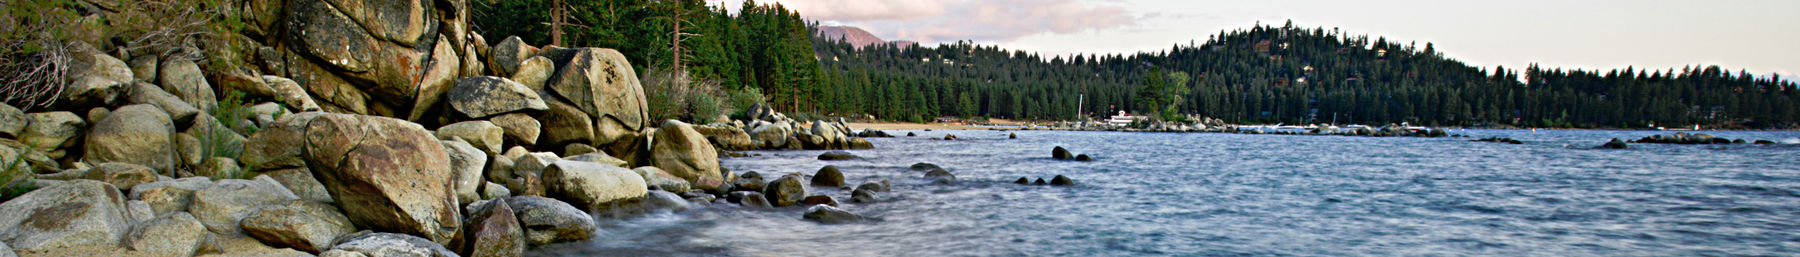 Zephyr Cove on Lake Tahoe